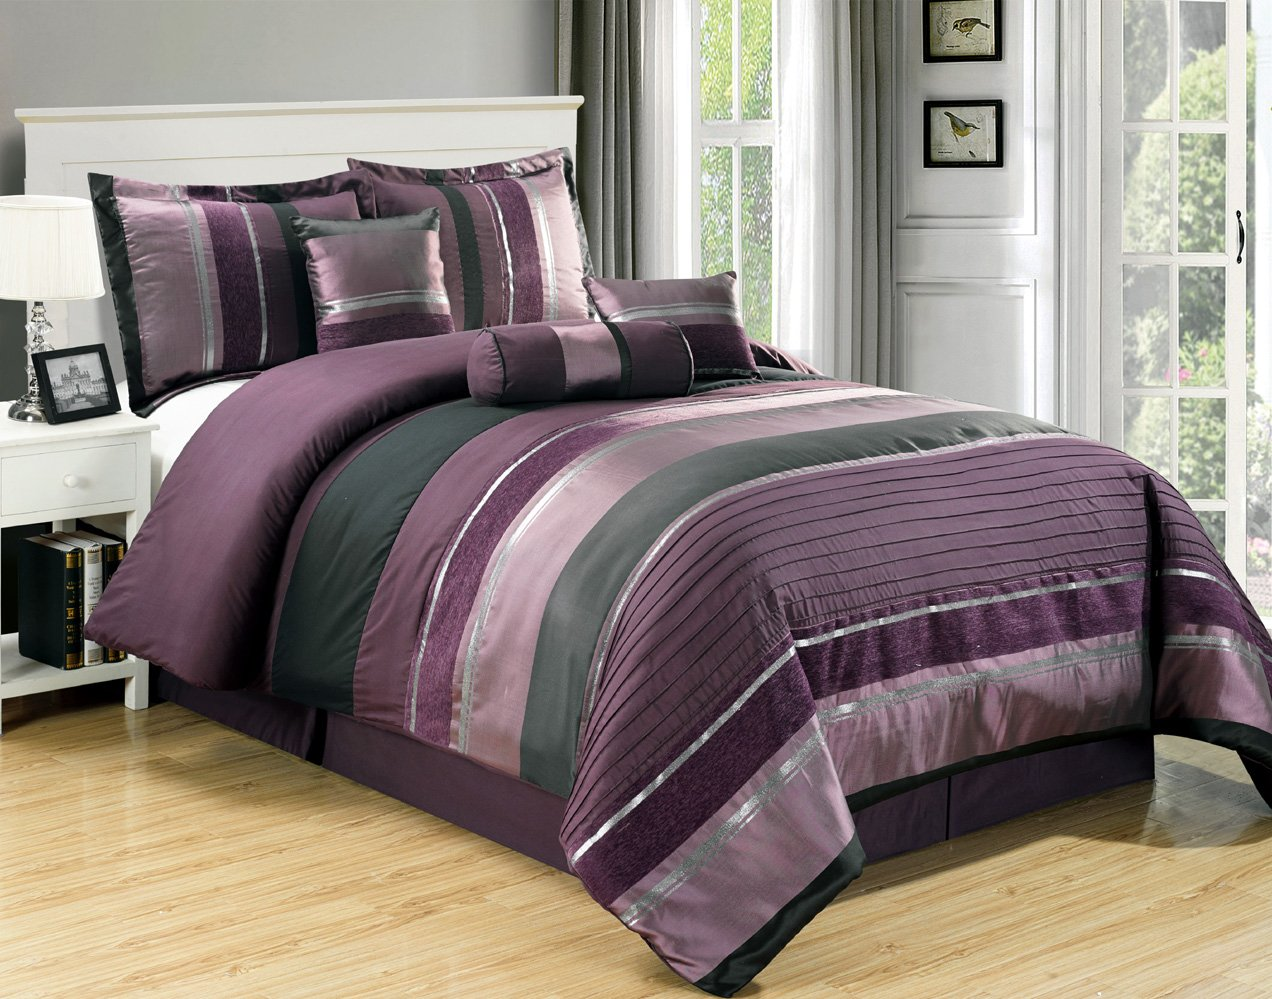 covers quilt plum pink eggplant beds patterns king bedroom bedding coverlets sets light luxury quilts duvets size cover cotton and comforter purple super amazing duvet set bedspreads